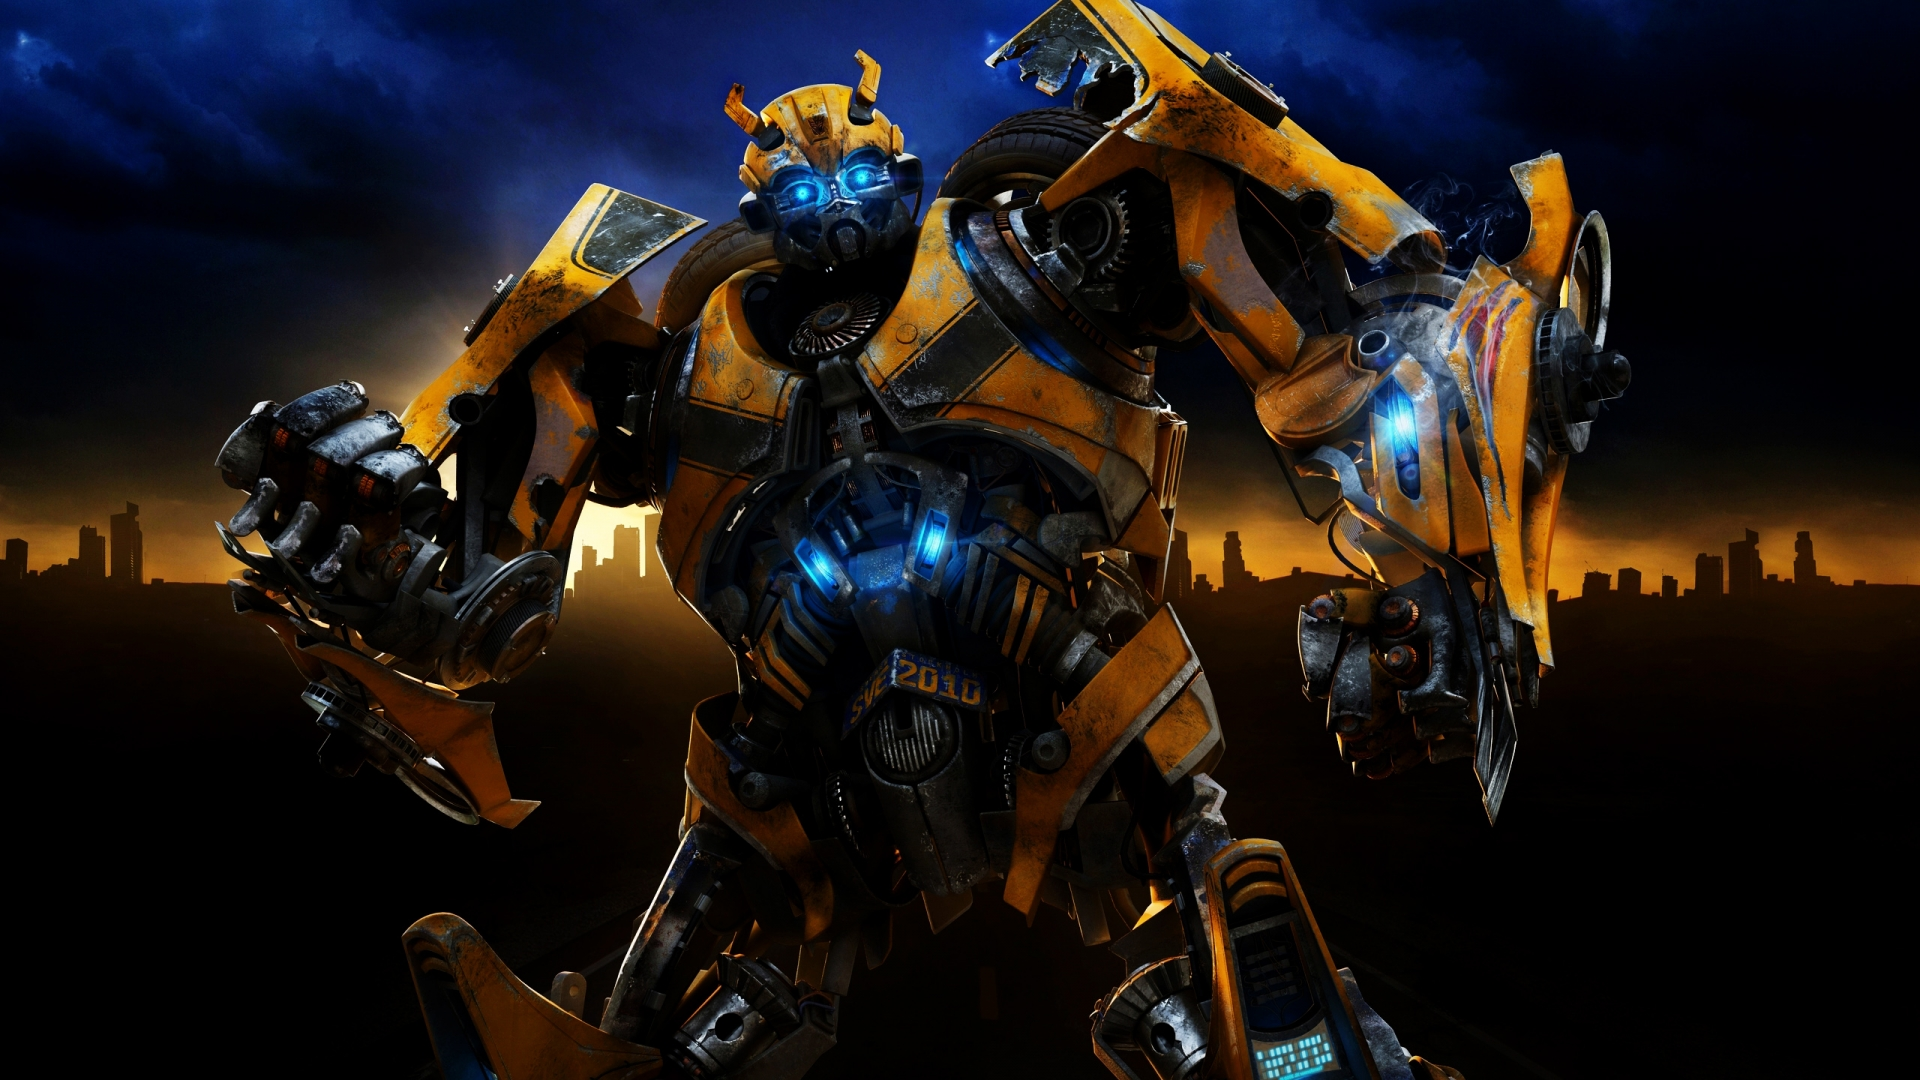 Transformers 2 Wallpapers Posted By Samantha Sellers